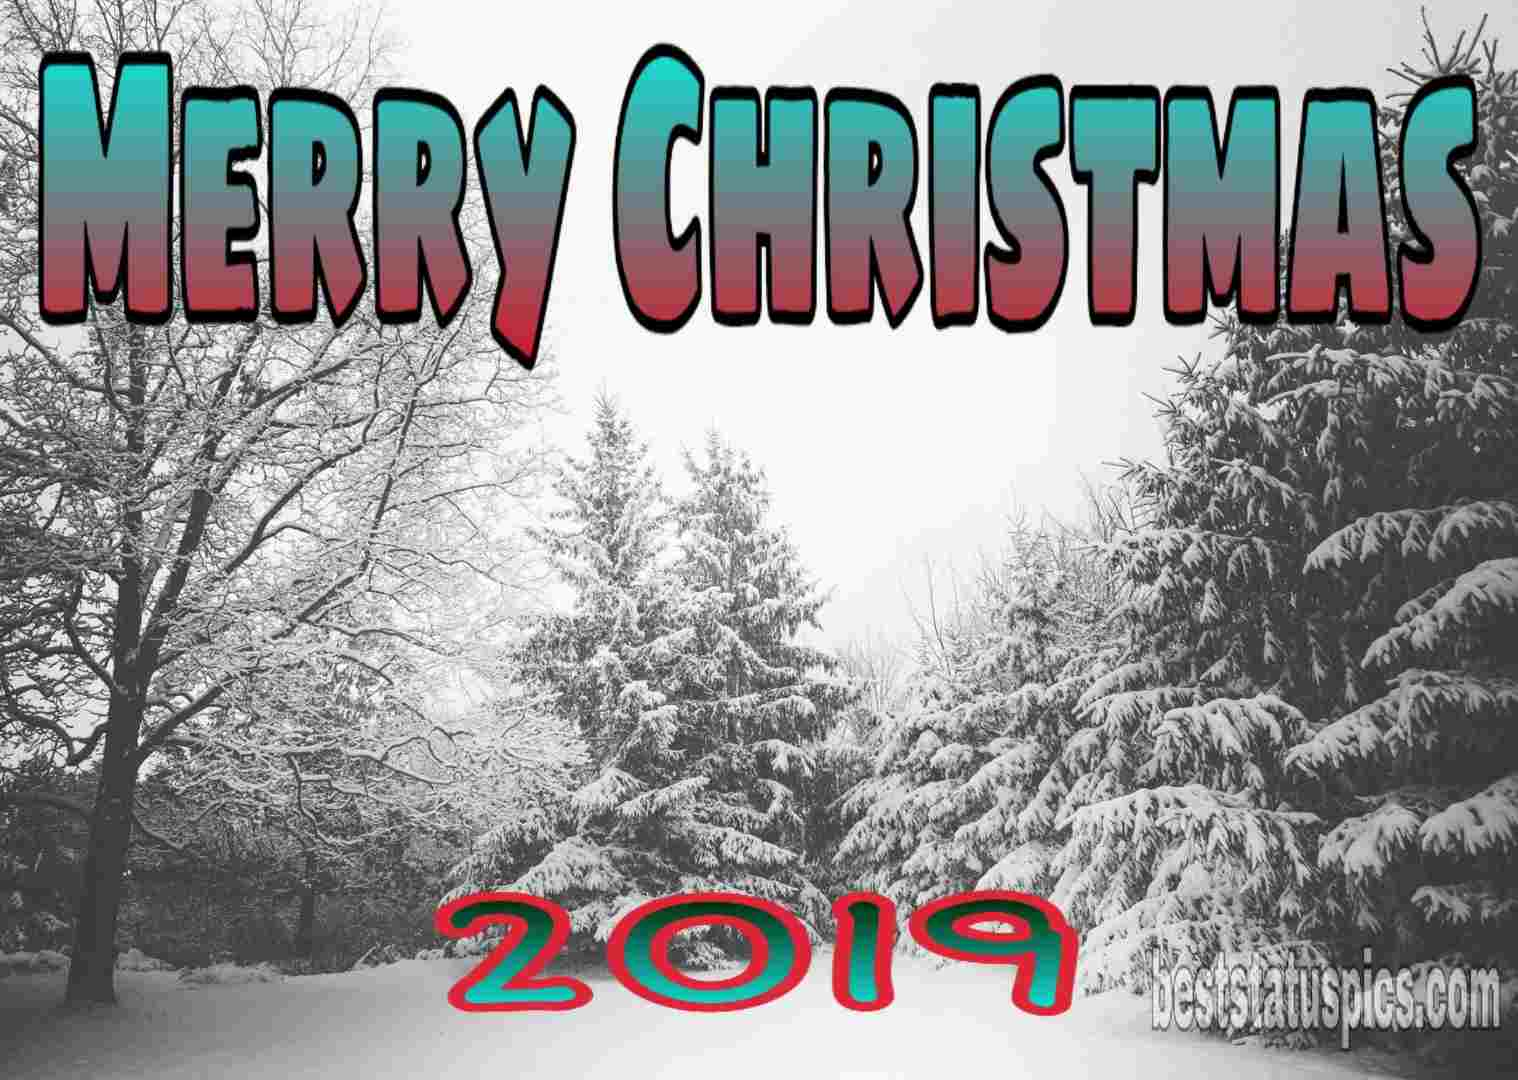 Merry Christmas wishes 2019 for Friends